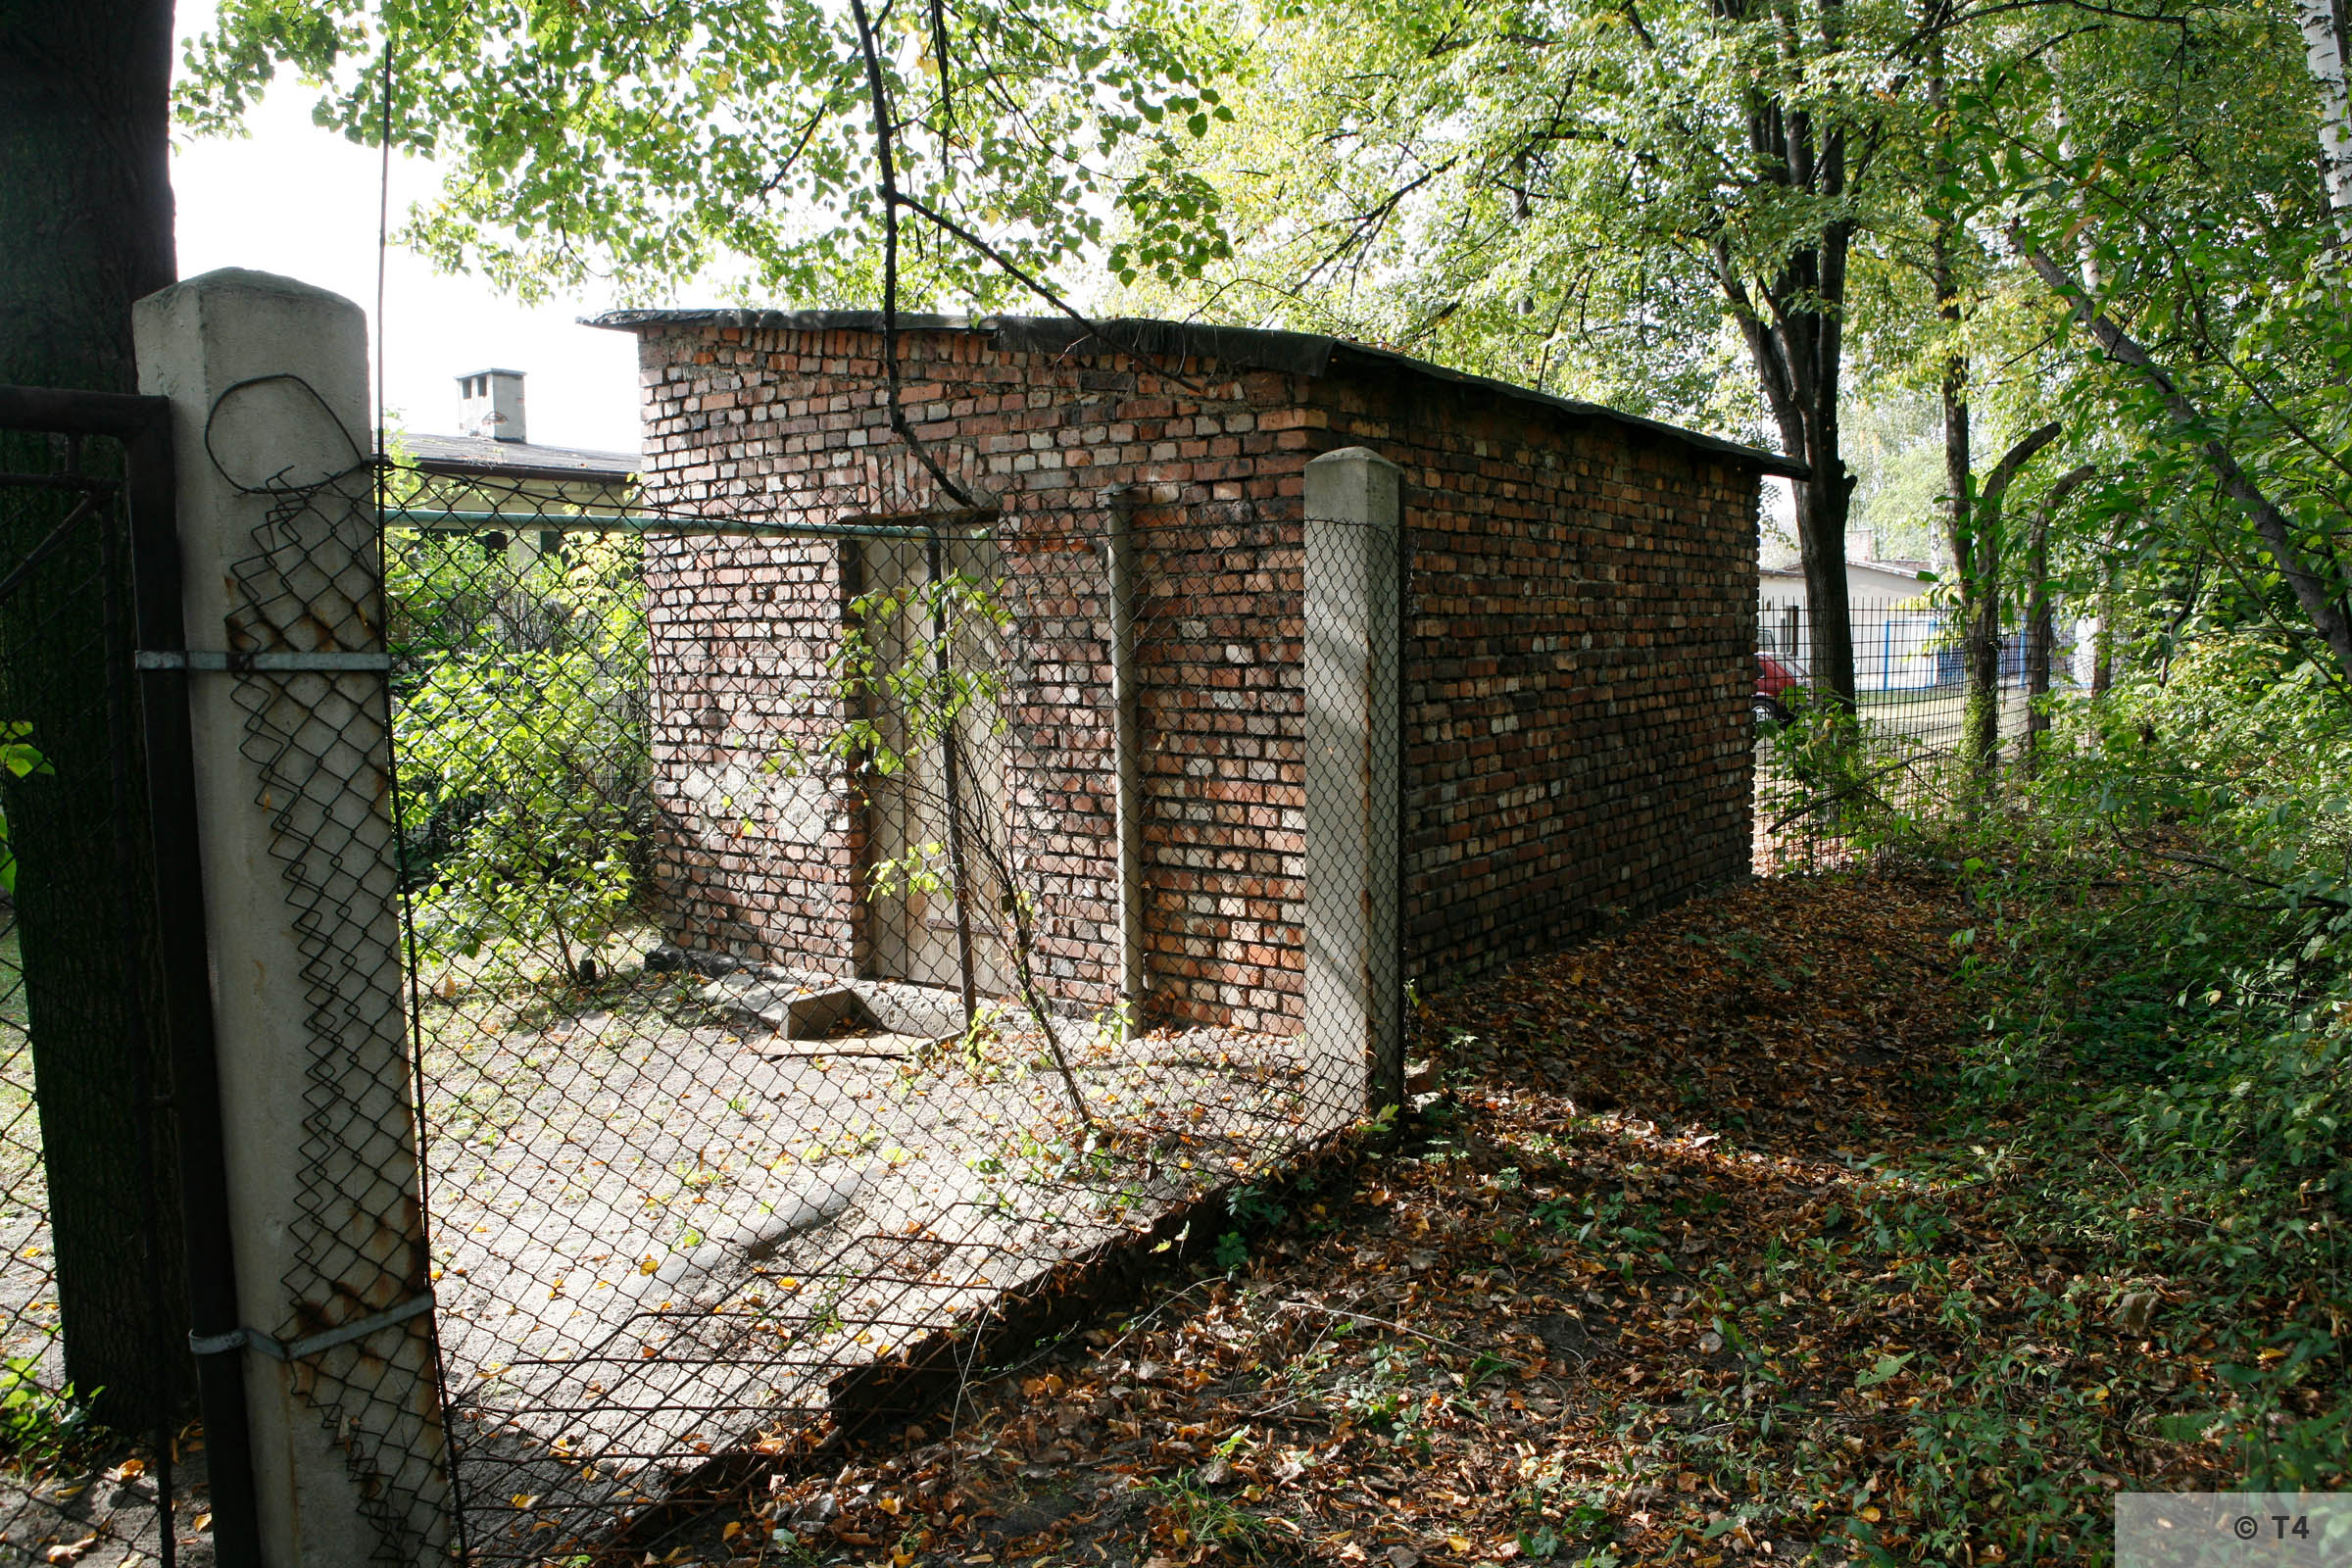 Brick building near the former Blockführerstube near the camp main entrance gate and remnants of camp fence. 2006 T4 2848